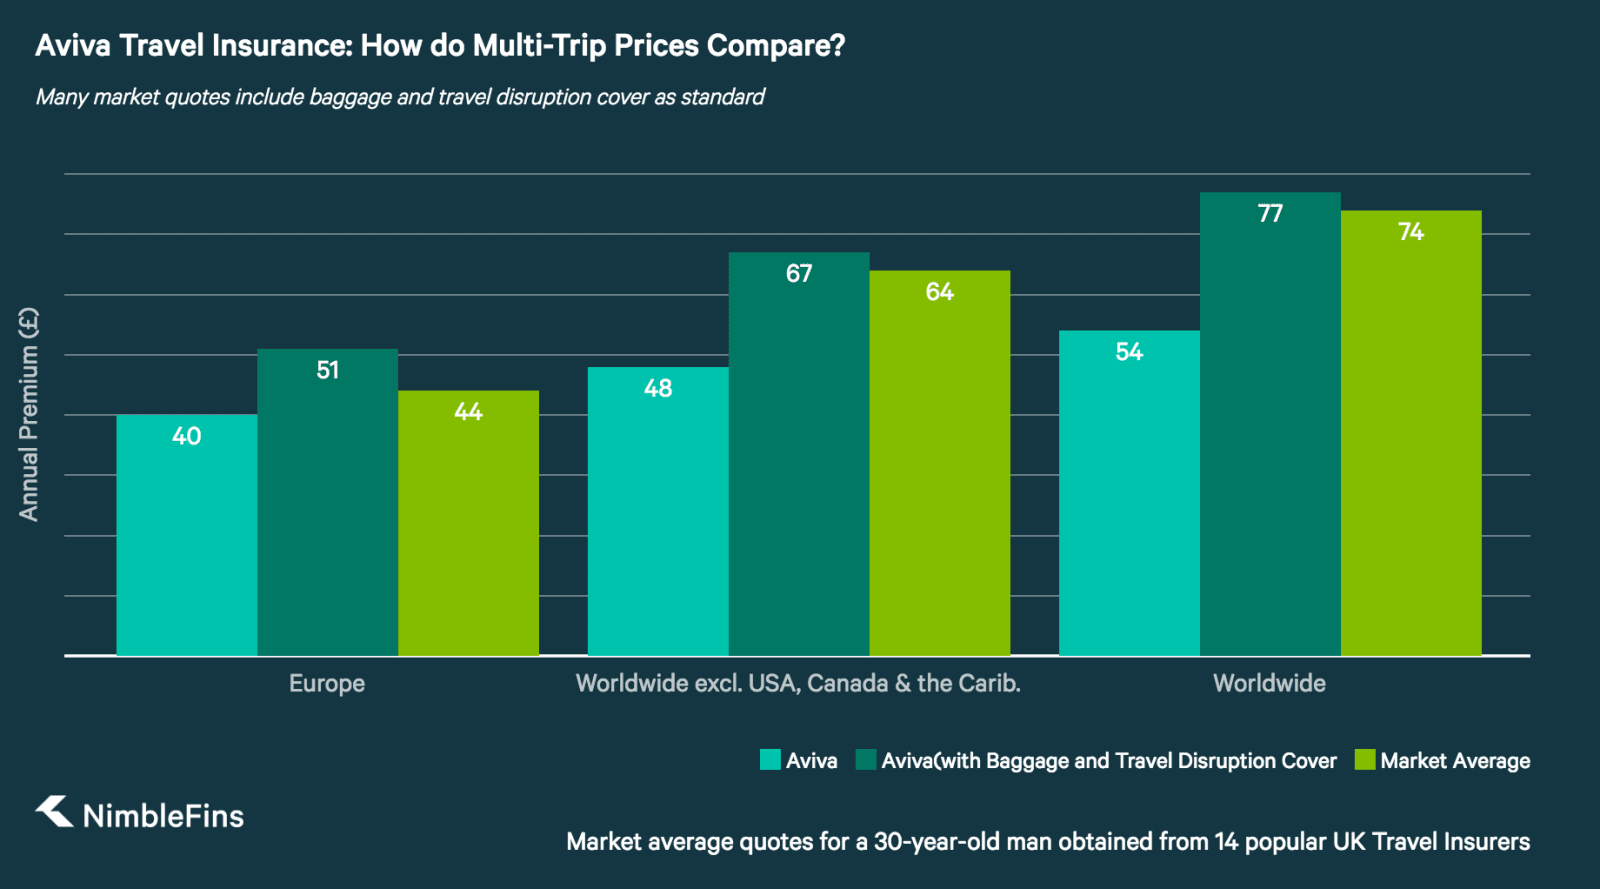 chart showing Aviva multi-trip travel insurance prices compared to market averages